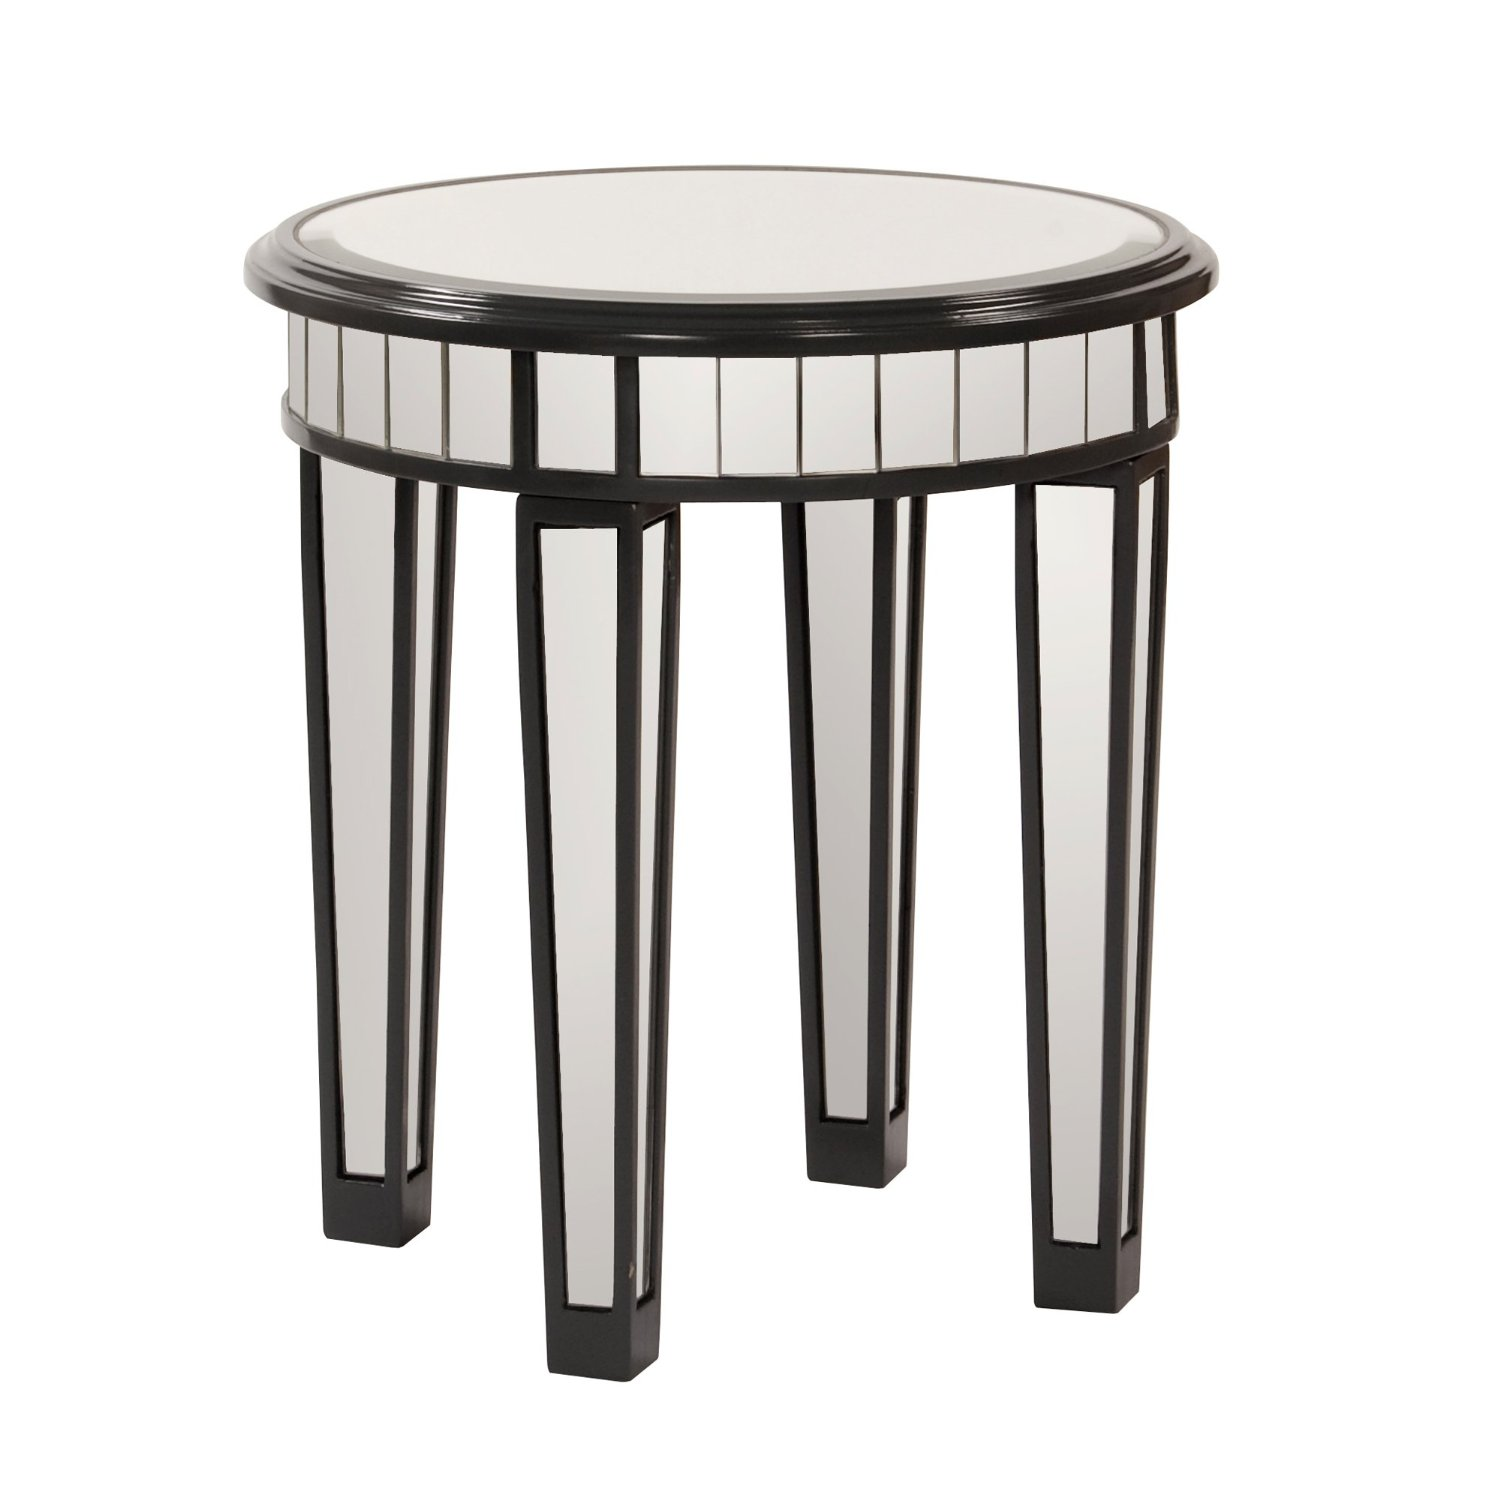 small accent tables nightstand round bedside mirrored table with legs and black wooden tablecloth for cast iron outdoor furniture lamps plus floor barista console drum shaped side